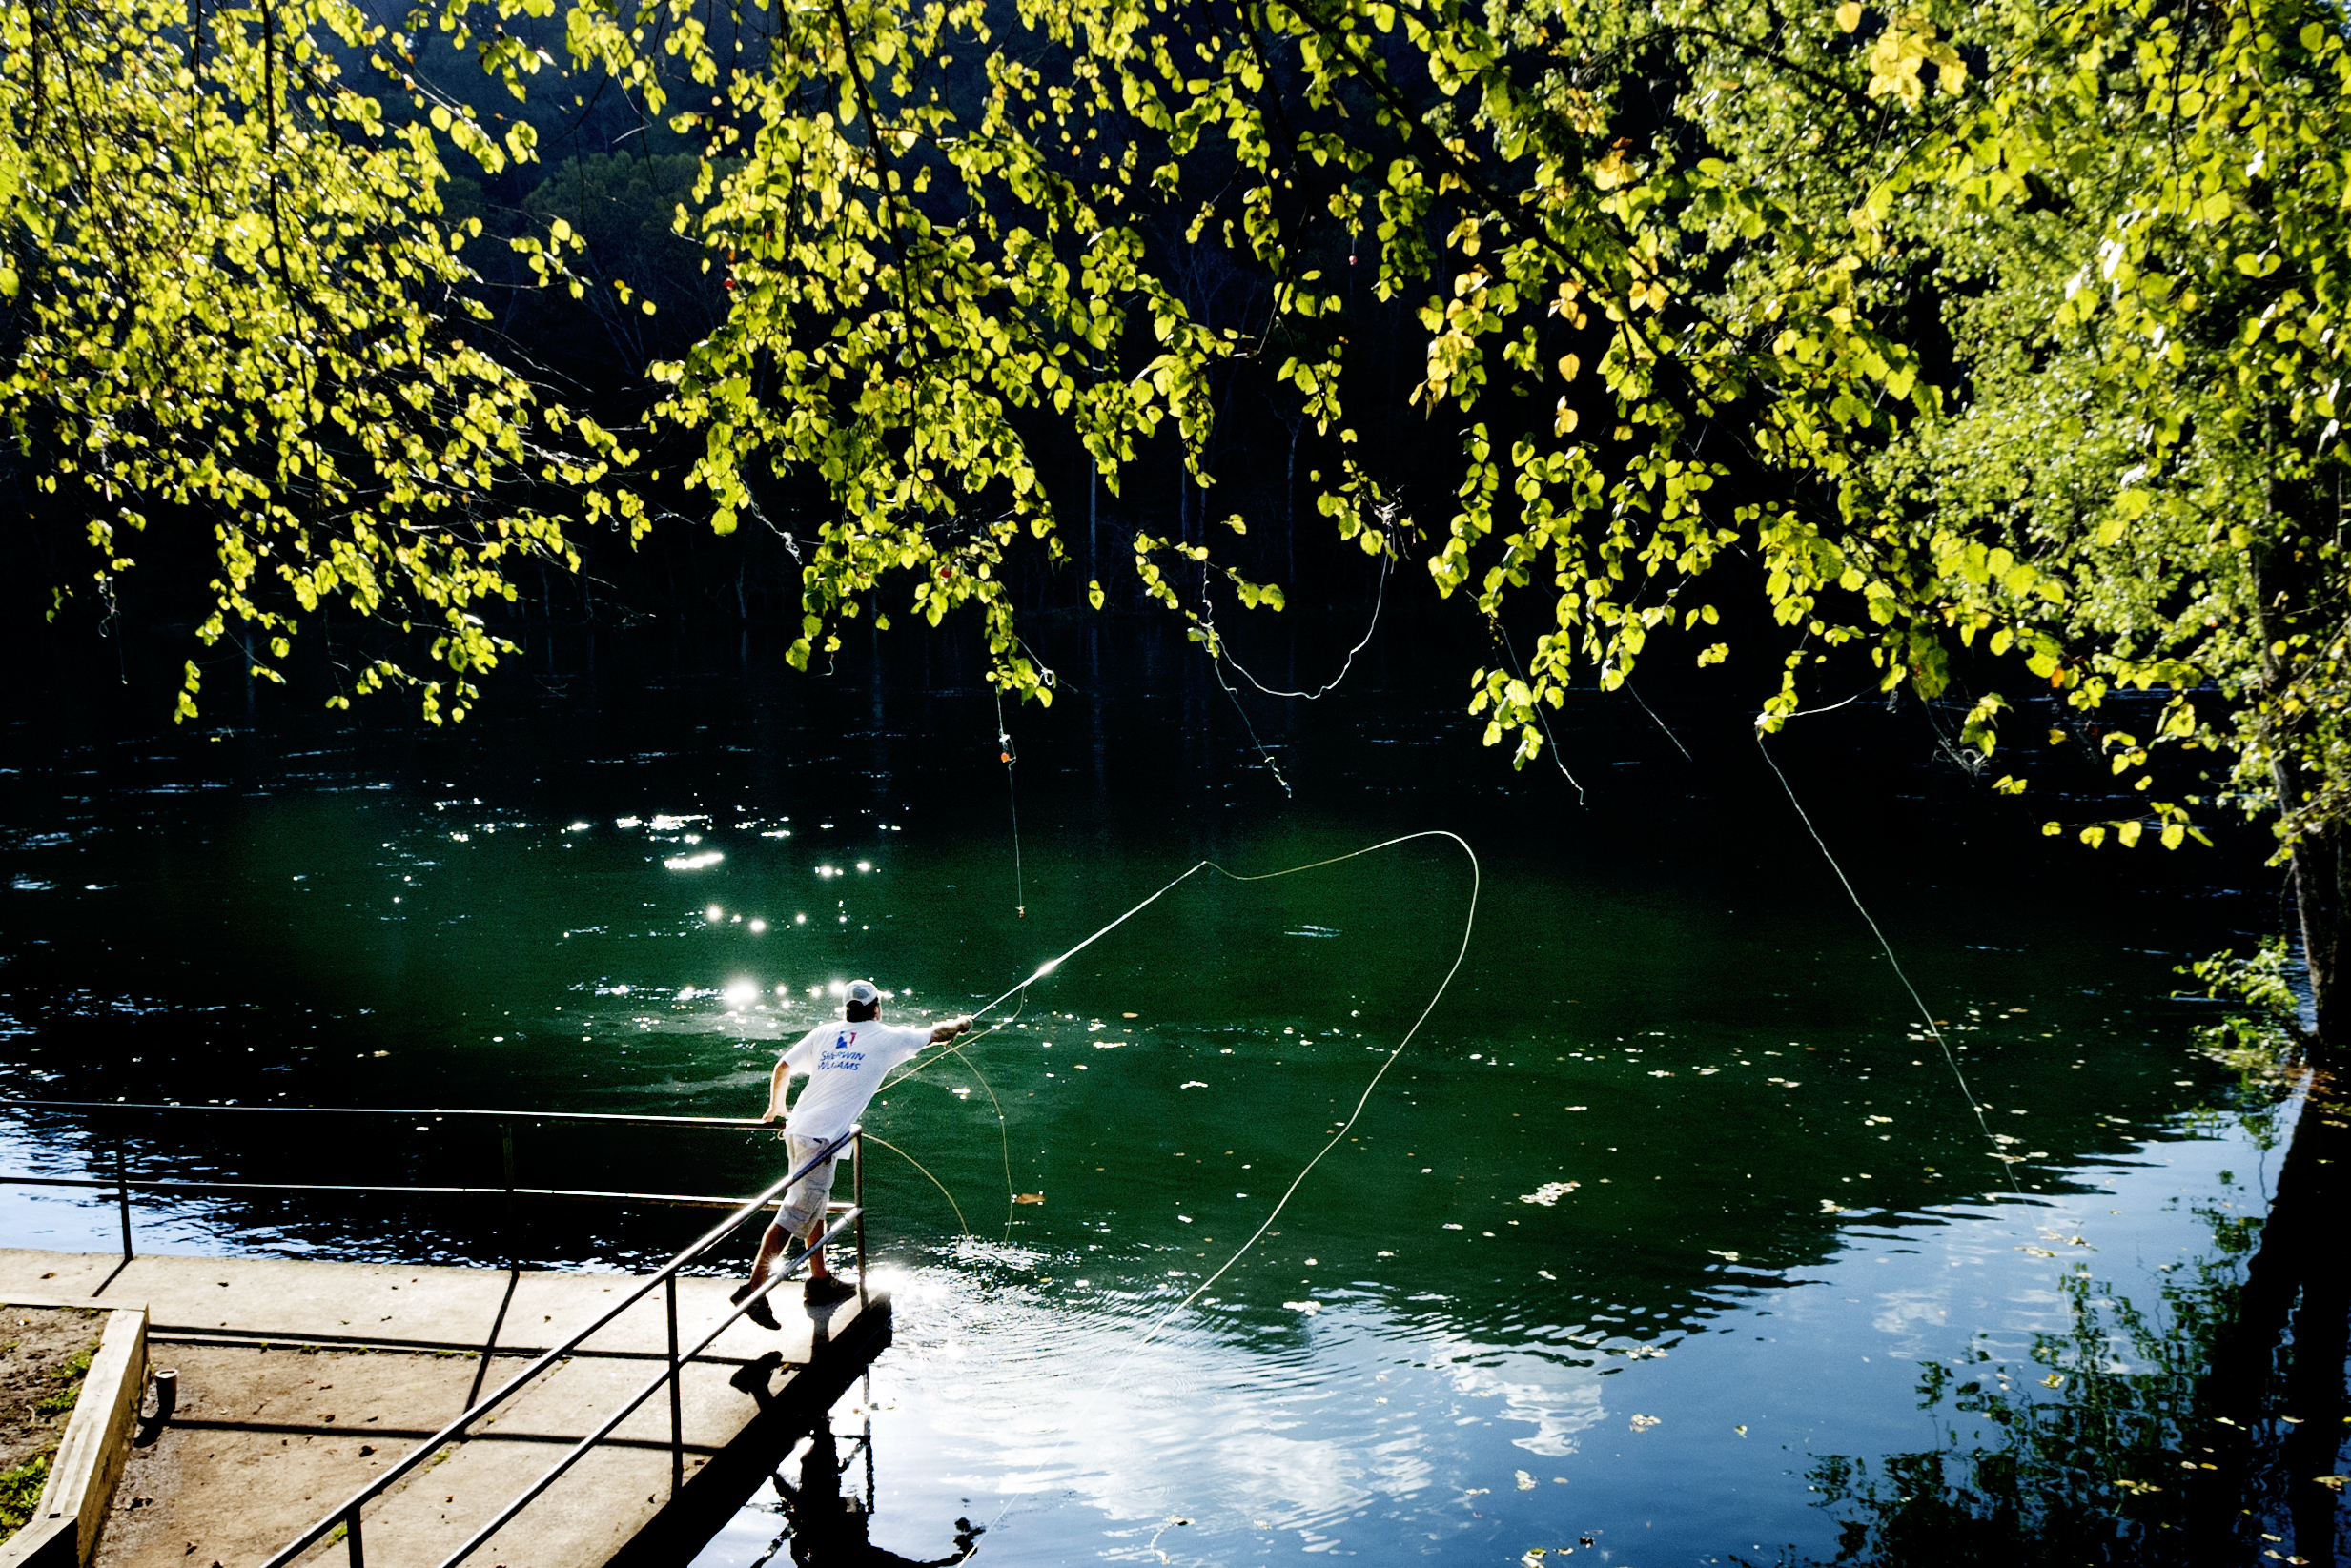 Matt Prentice, of Knoxville, fly fishes for large mouth bass on the Clinch River in Clinton, Tennessee.